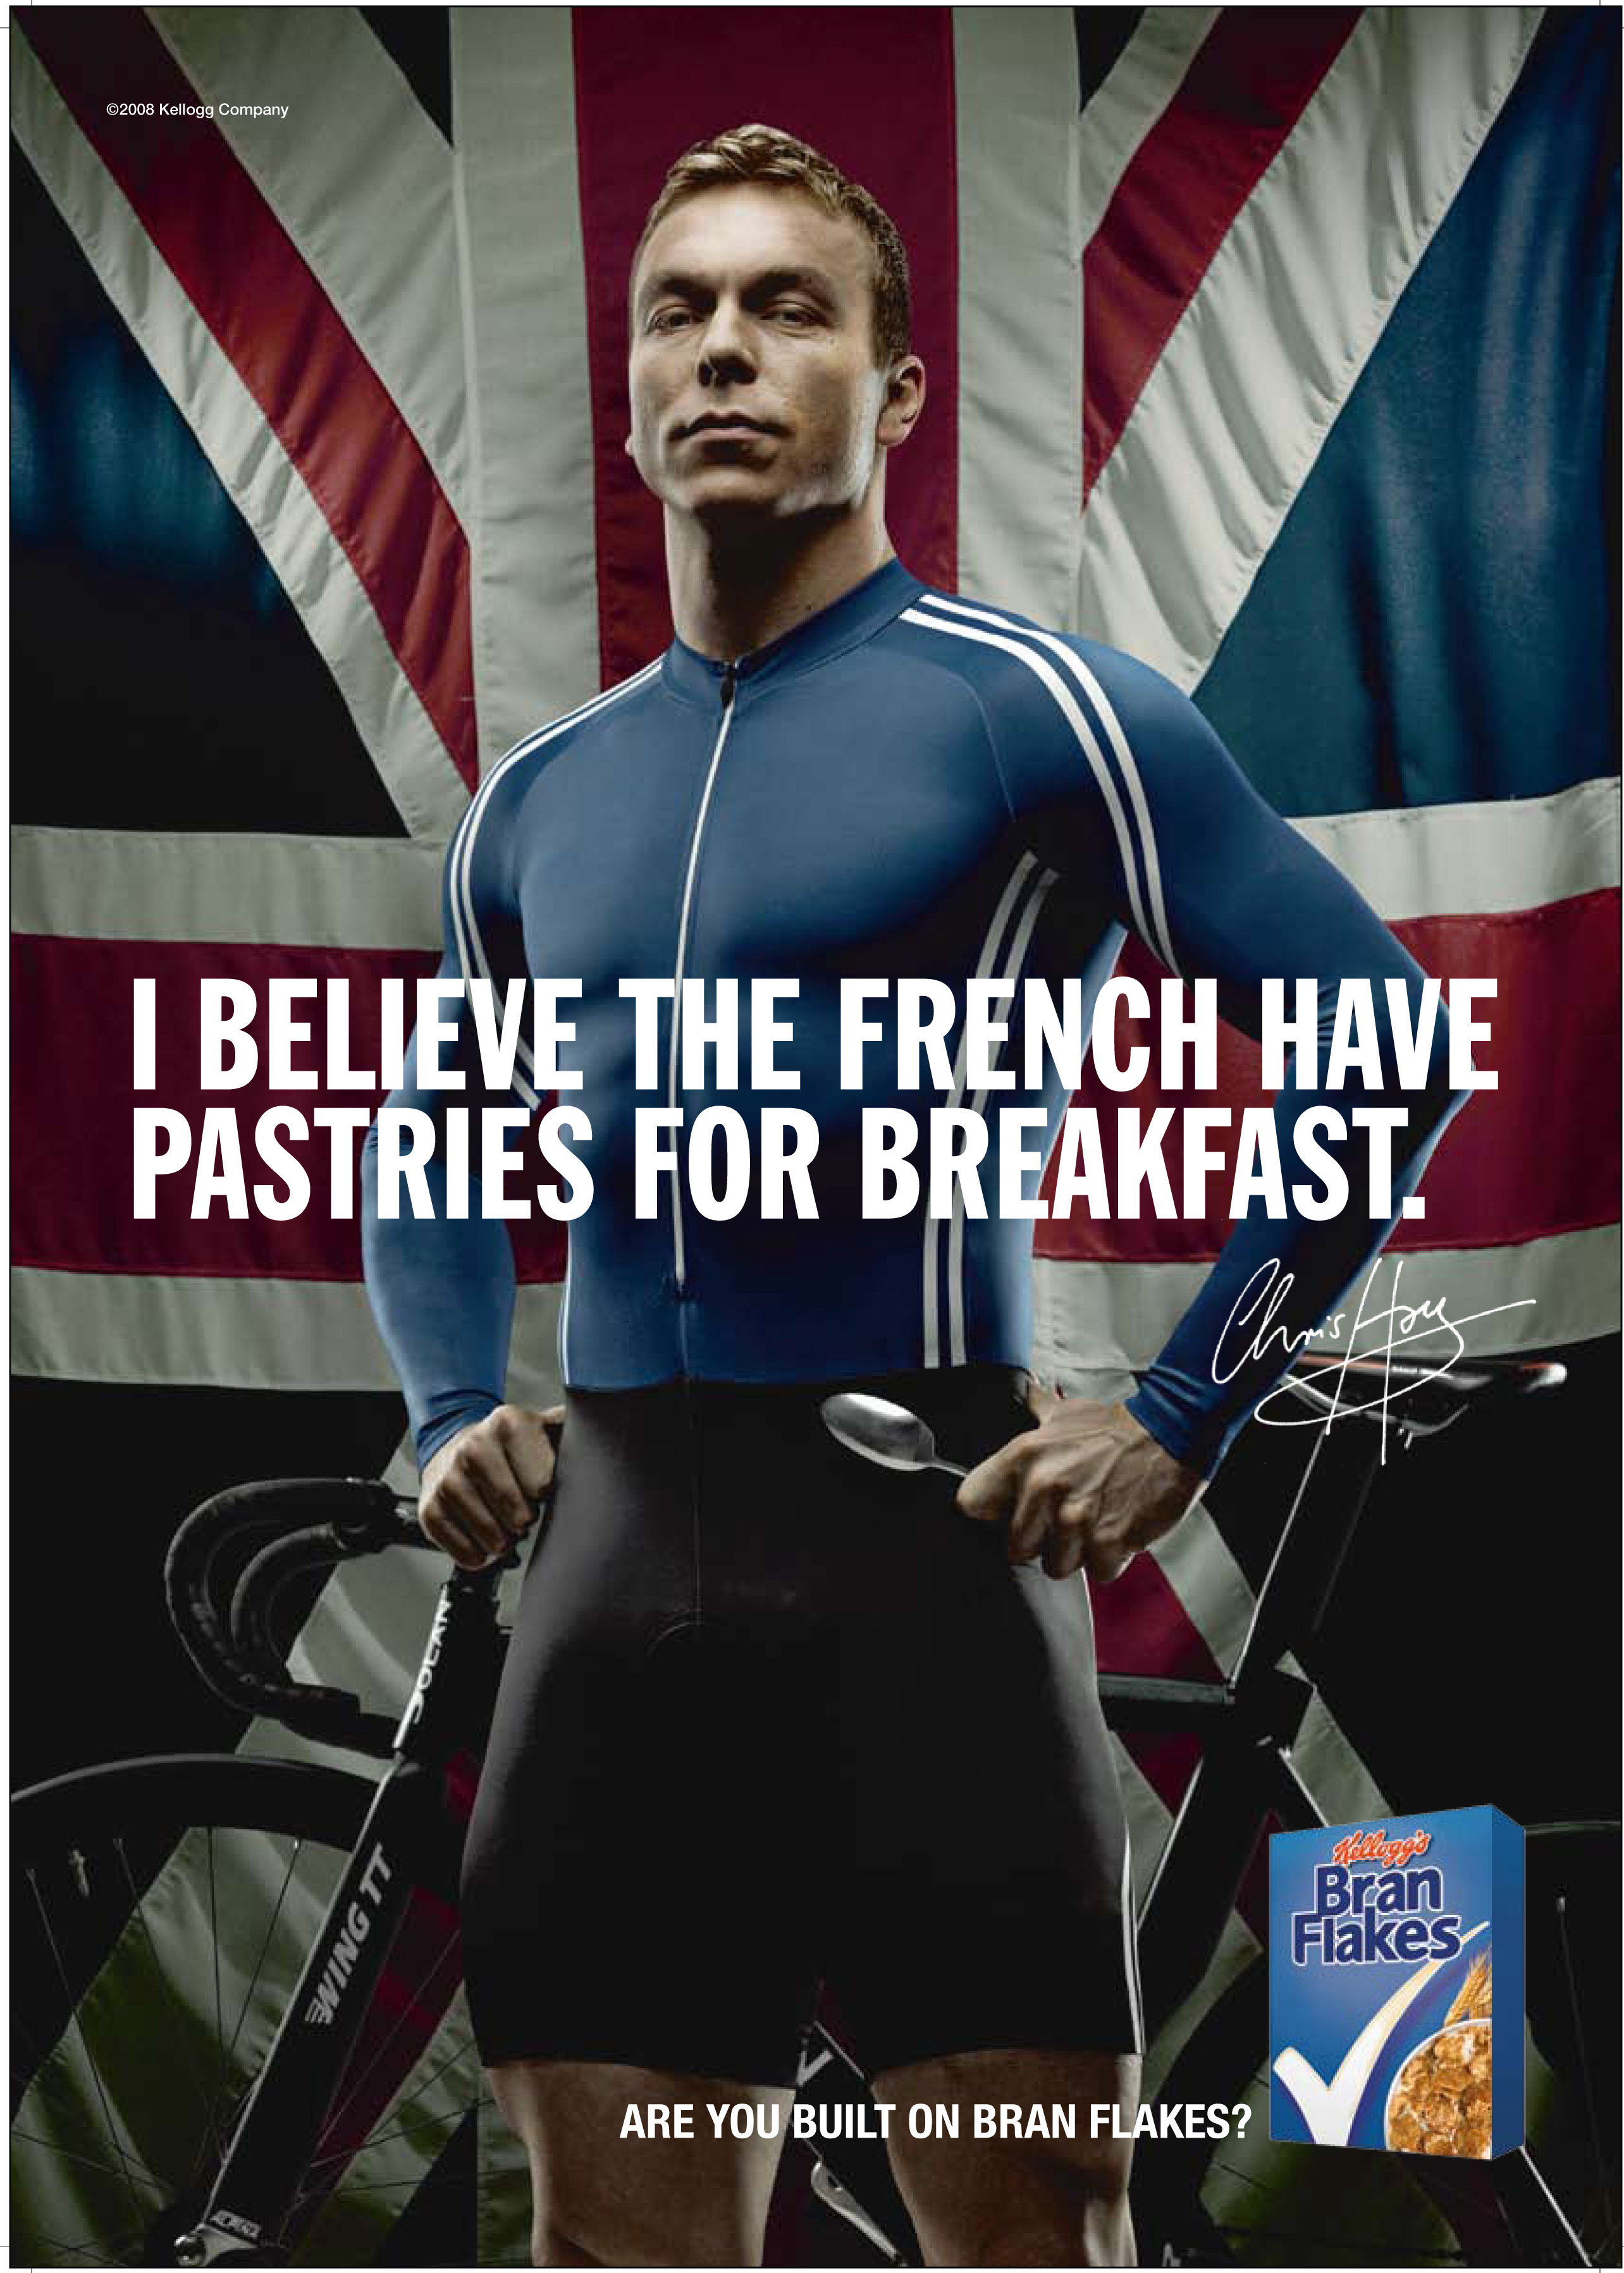 Chris Hoy Brank Flakes advert